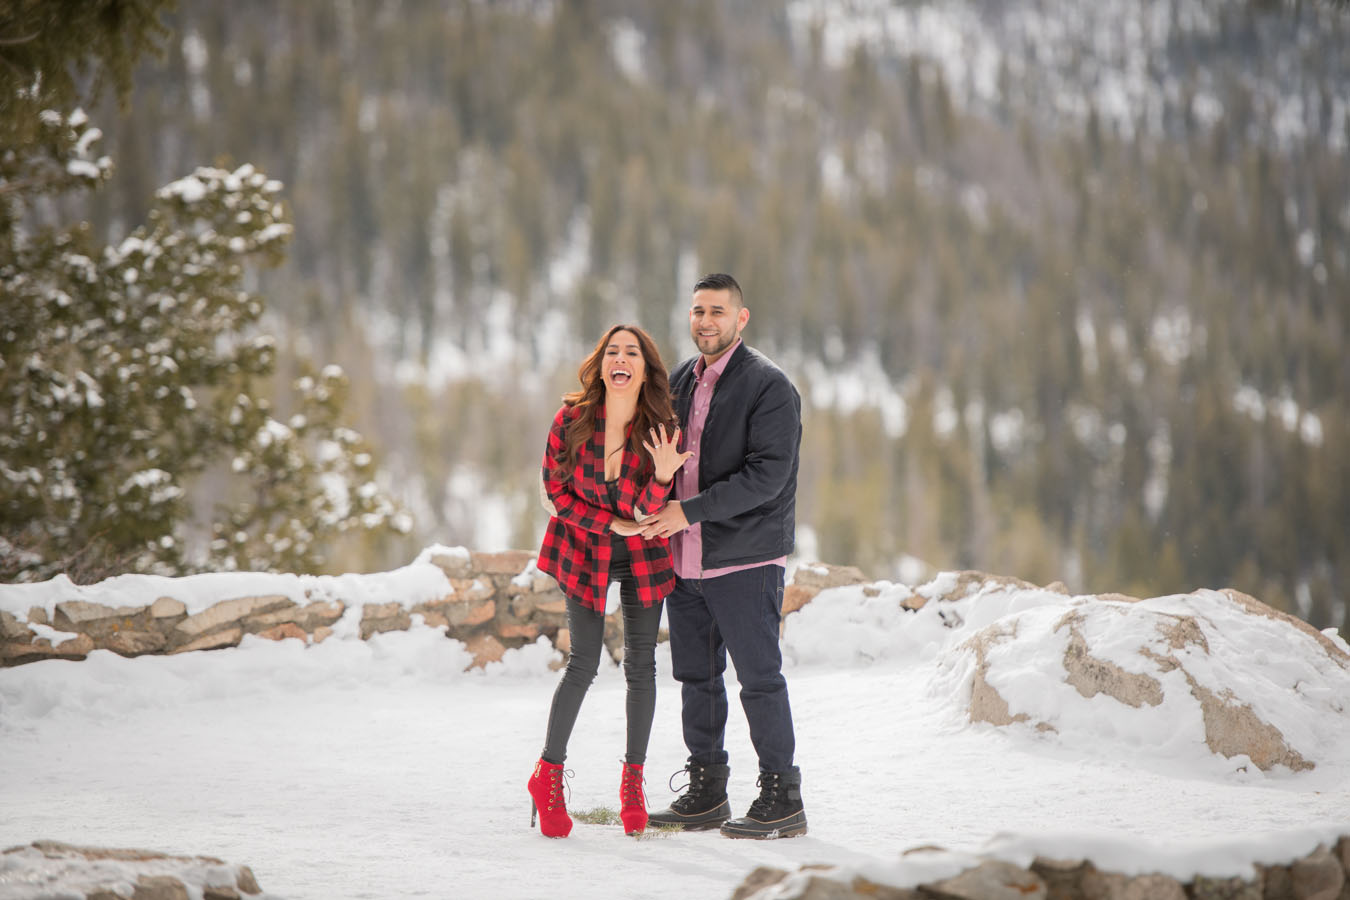 Proposal | Sapphire Point Overlook | Winter | February